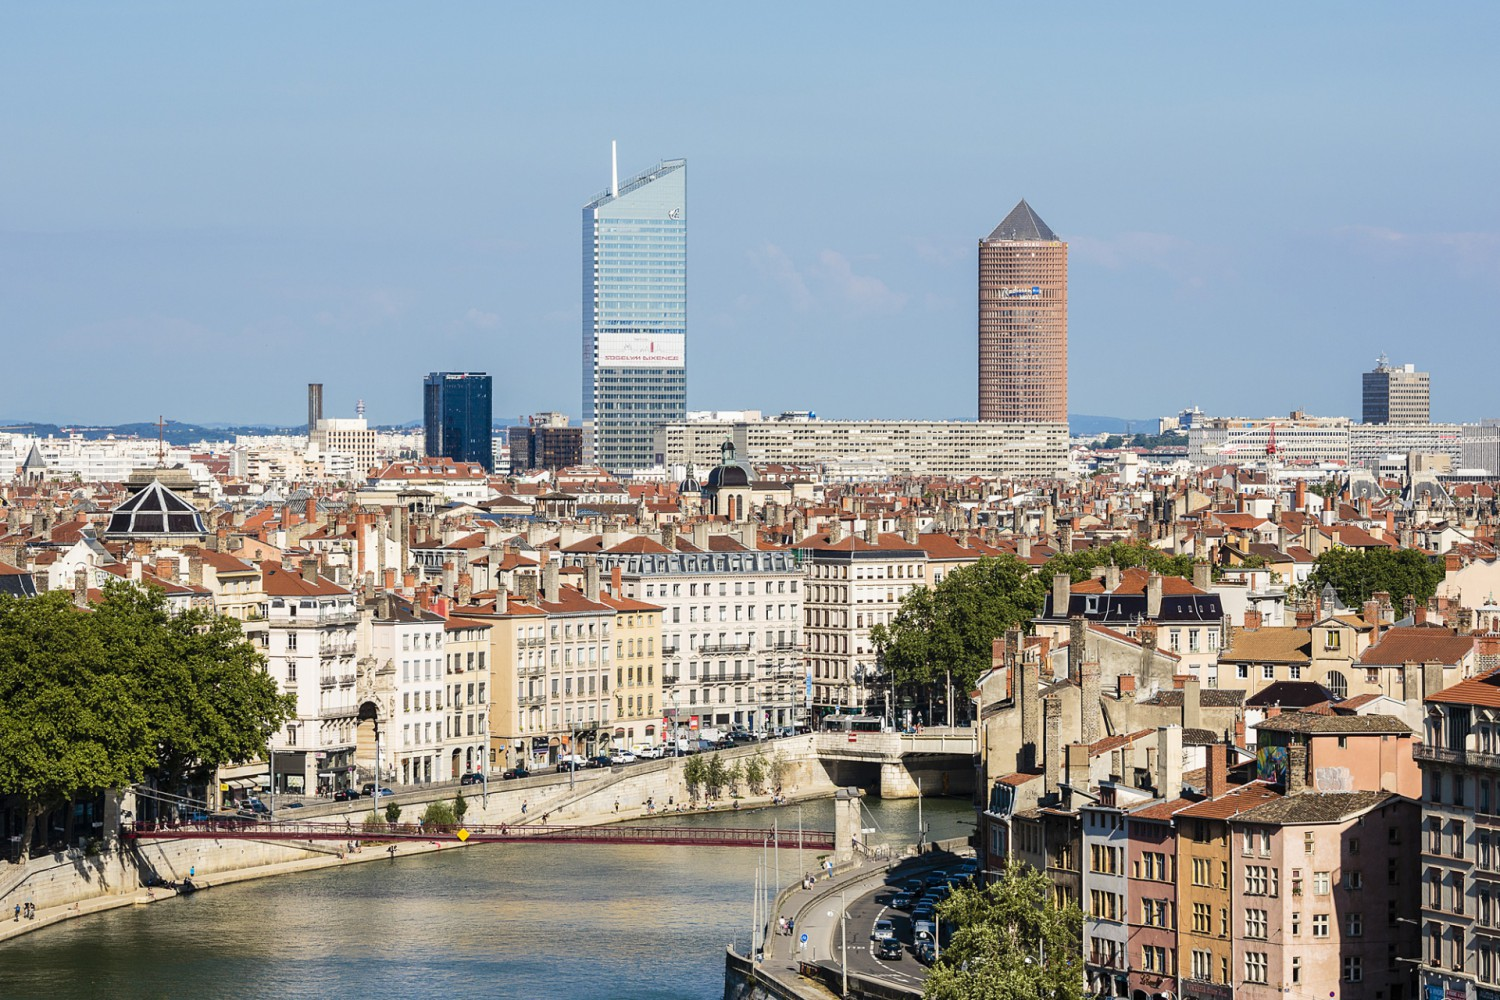 skyline_lyon_18_06_2015_hd_b_rob.com.jpg